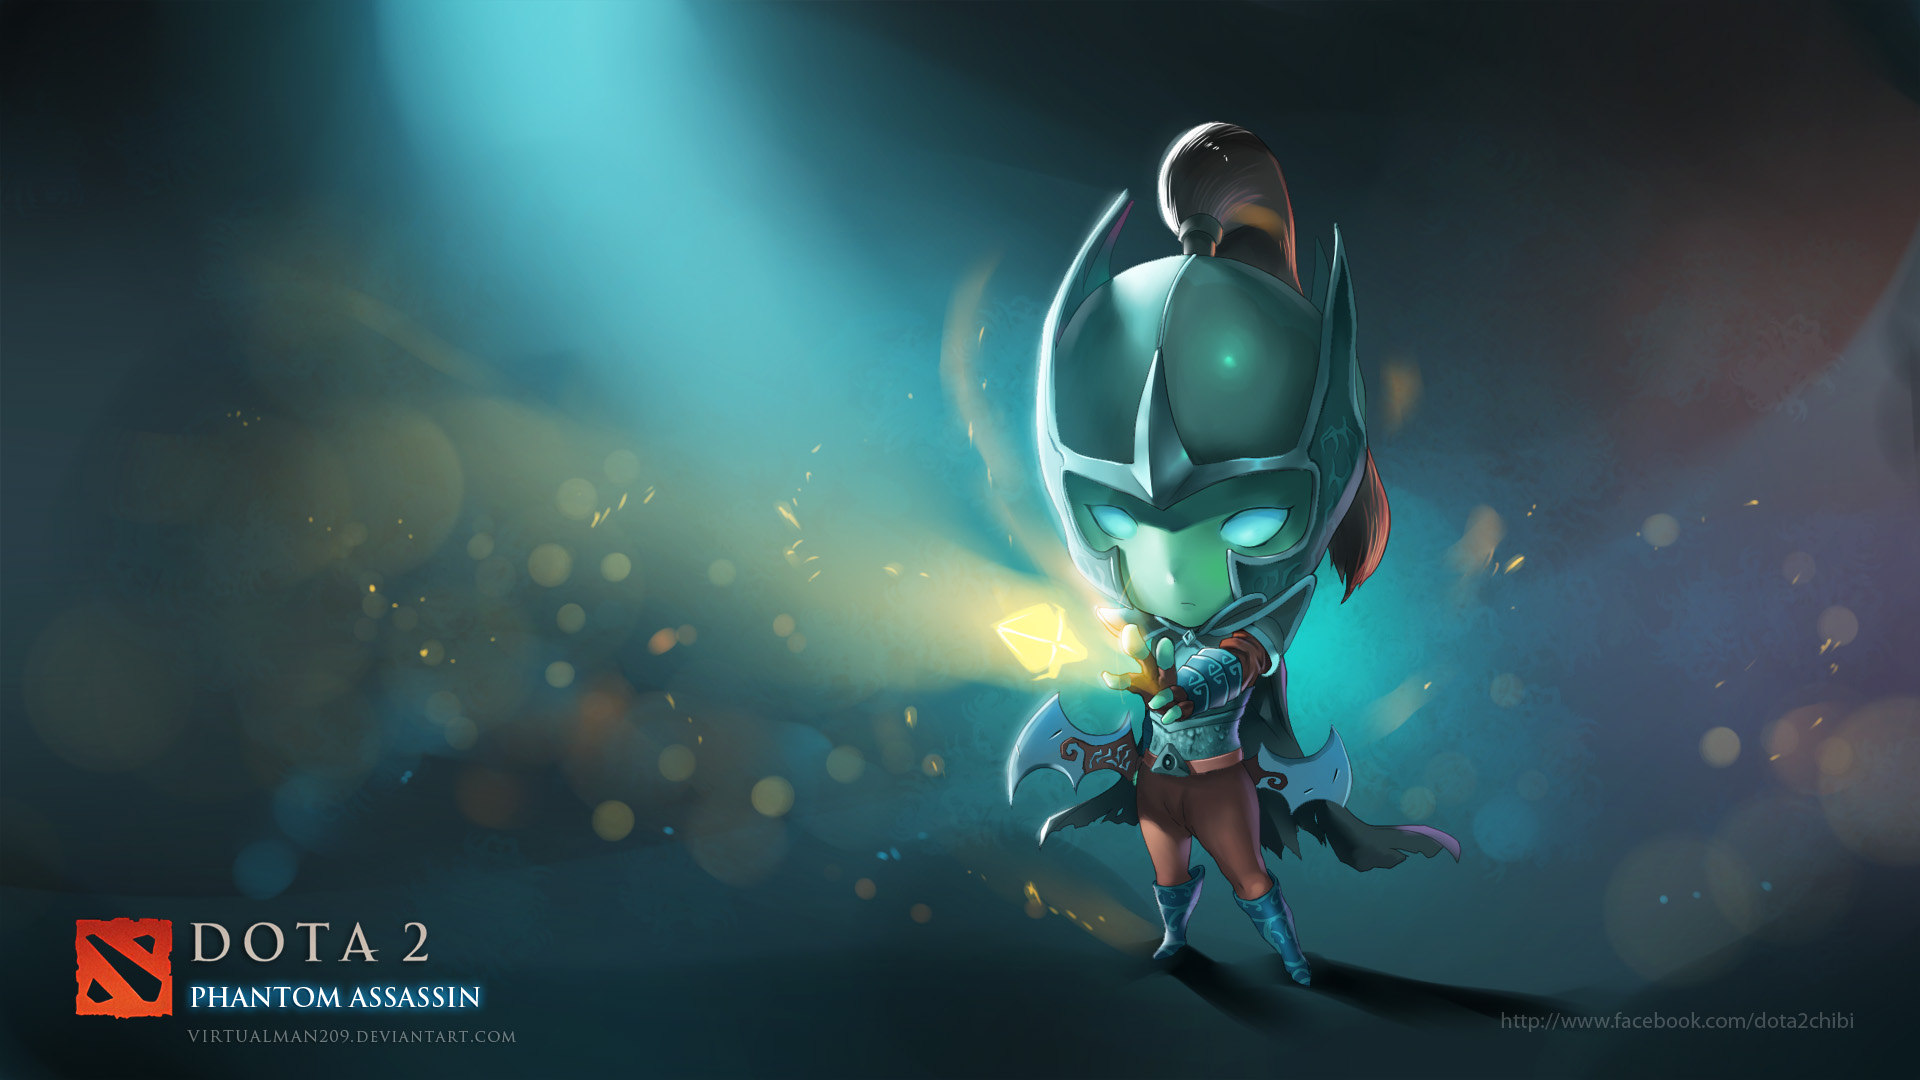 Dota 2 Wallpaper Phantom Assassin Arcana